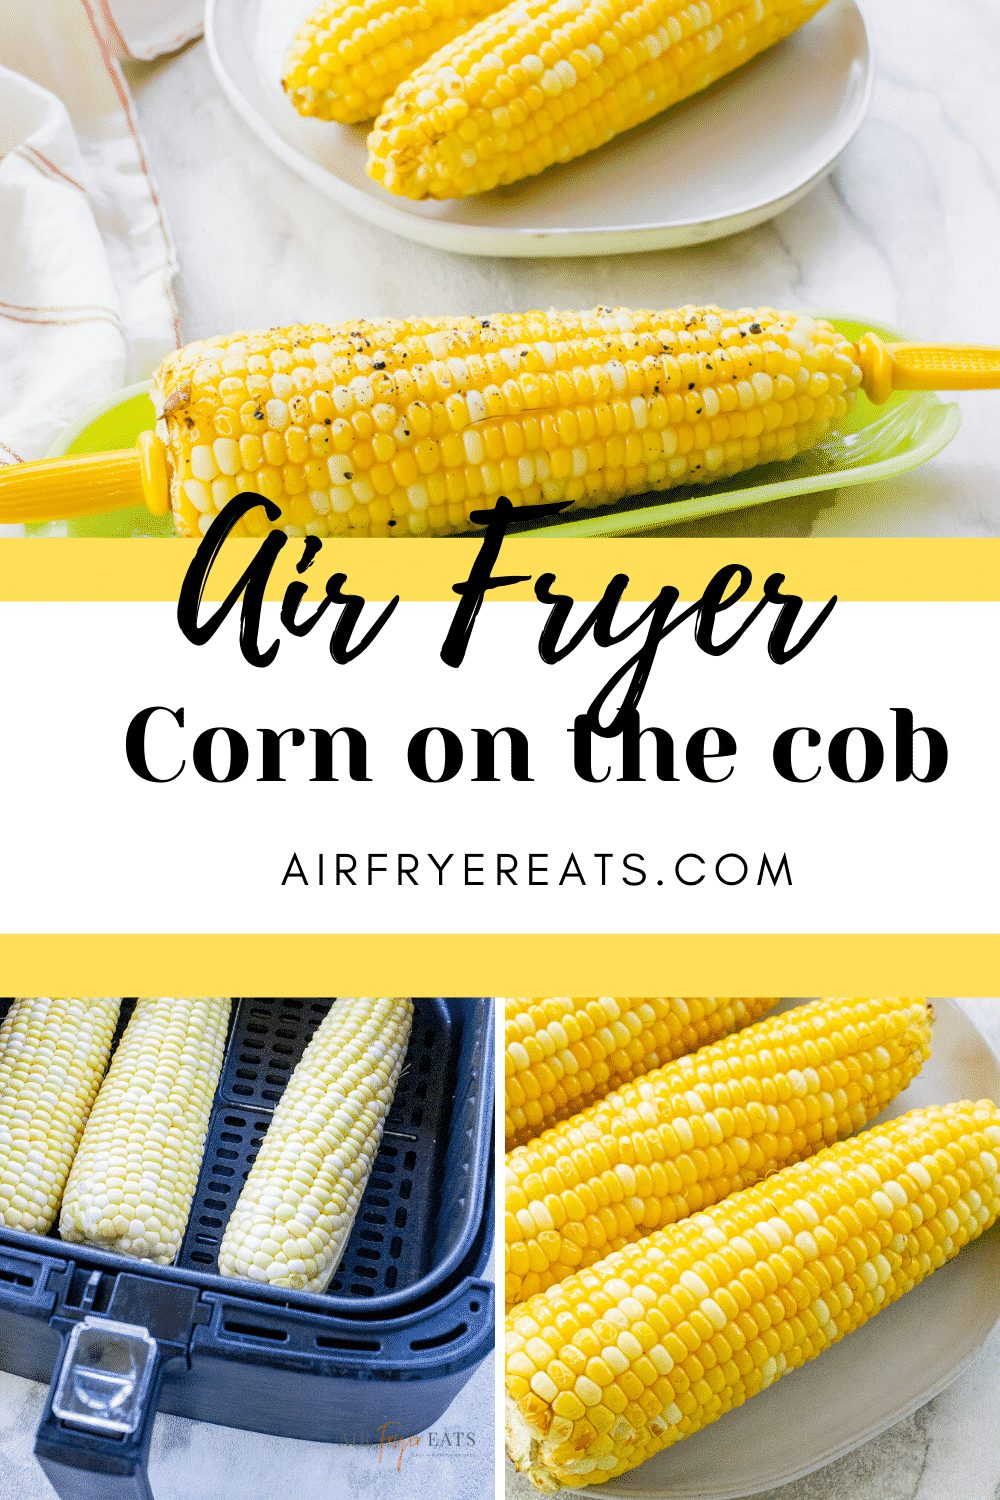 Air Fryer Corn on the Cob will become your new favorite air fryer recipe. Corn in the air fryer is cooked in under 10 minutes and provides a delicious roasted flavor. #airfryercorn #airfryercornonthecob via @vegetarianmamma